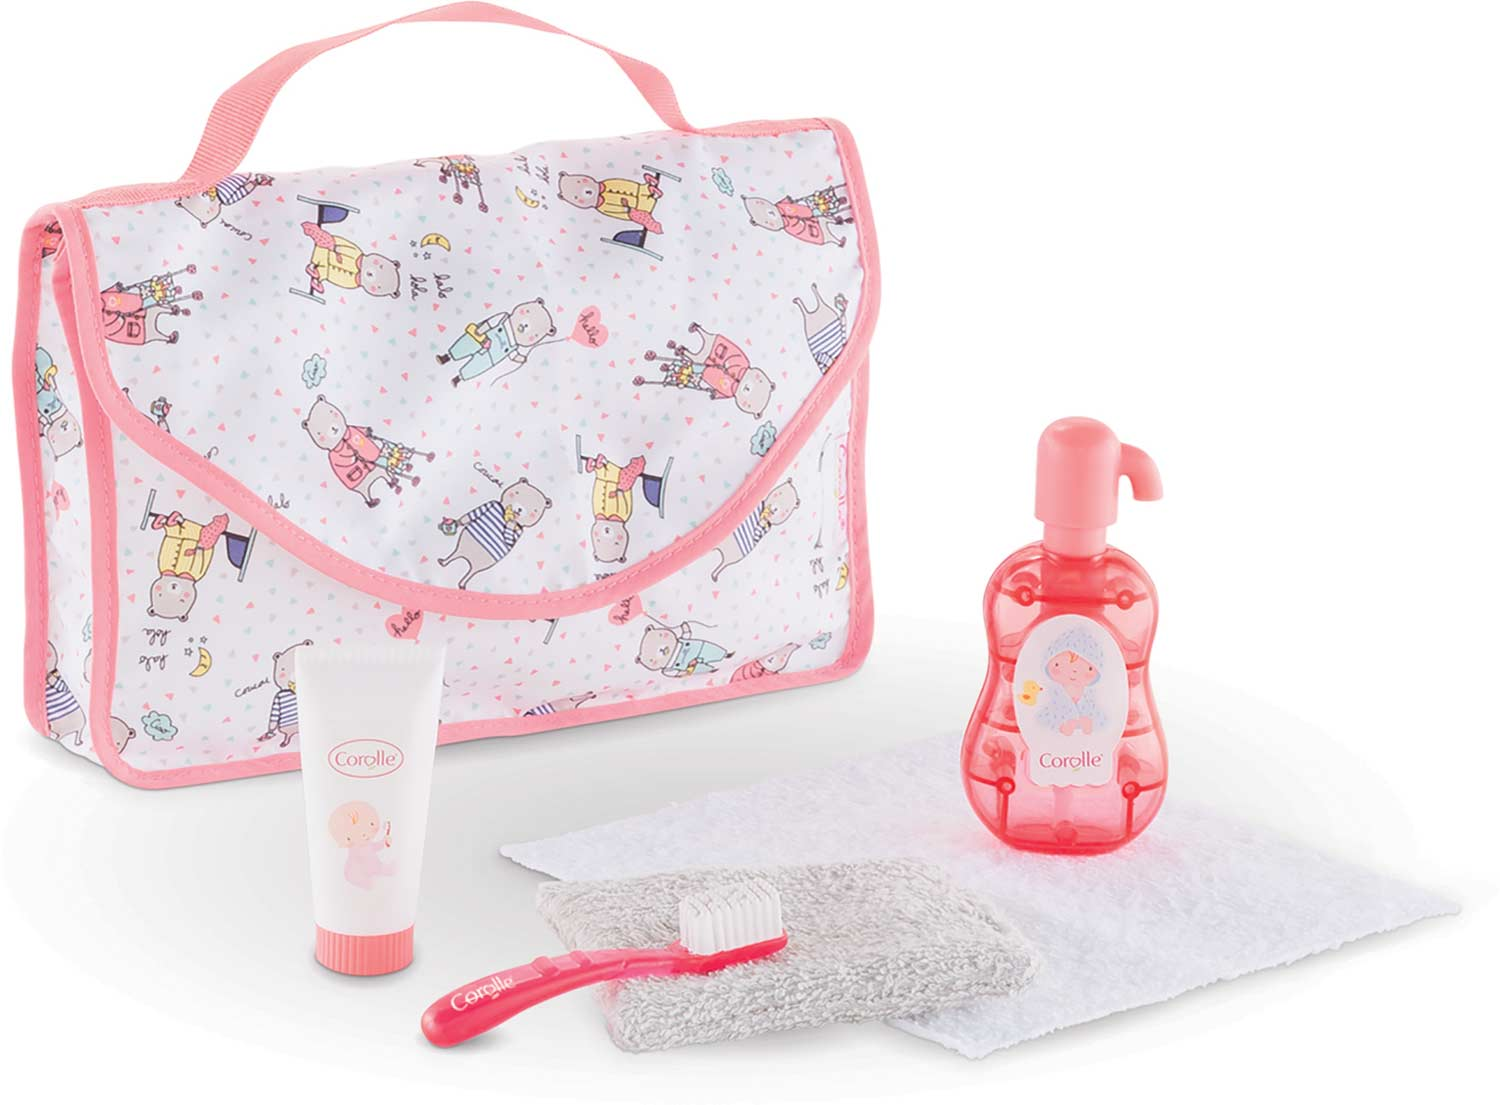 "BB14"" & 17"" Baby Care Set"